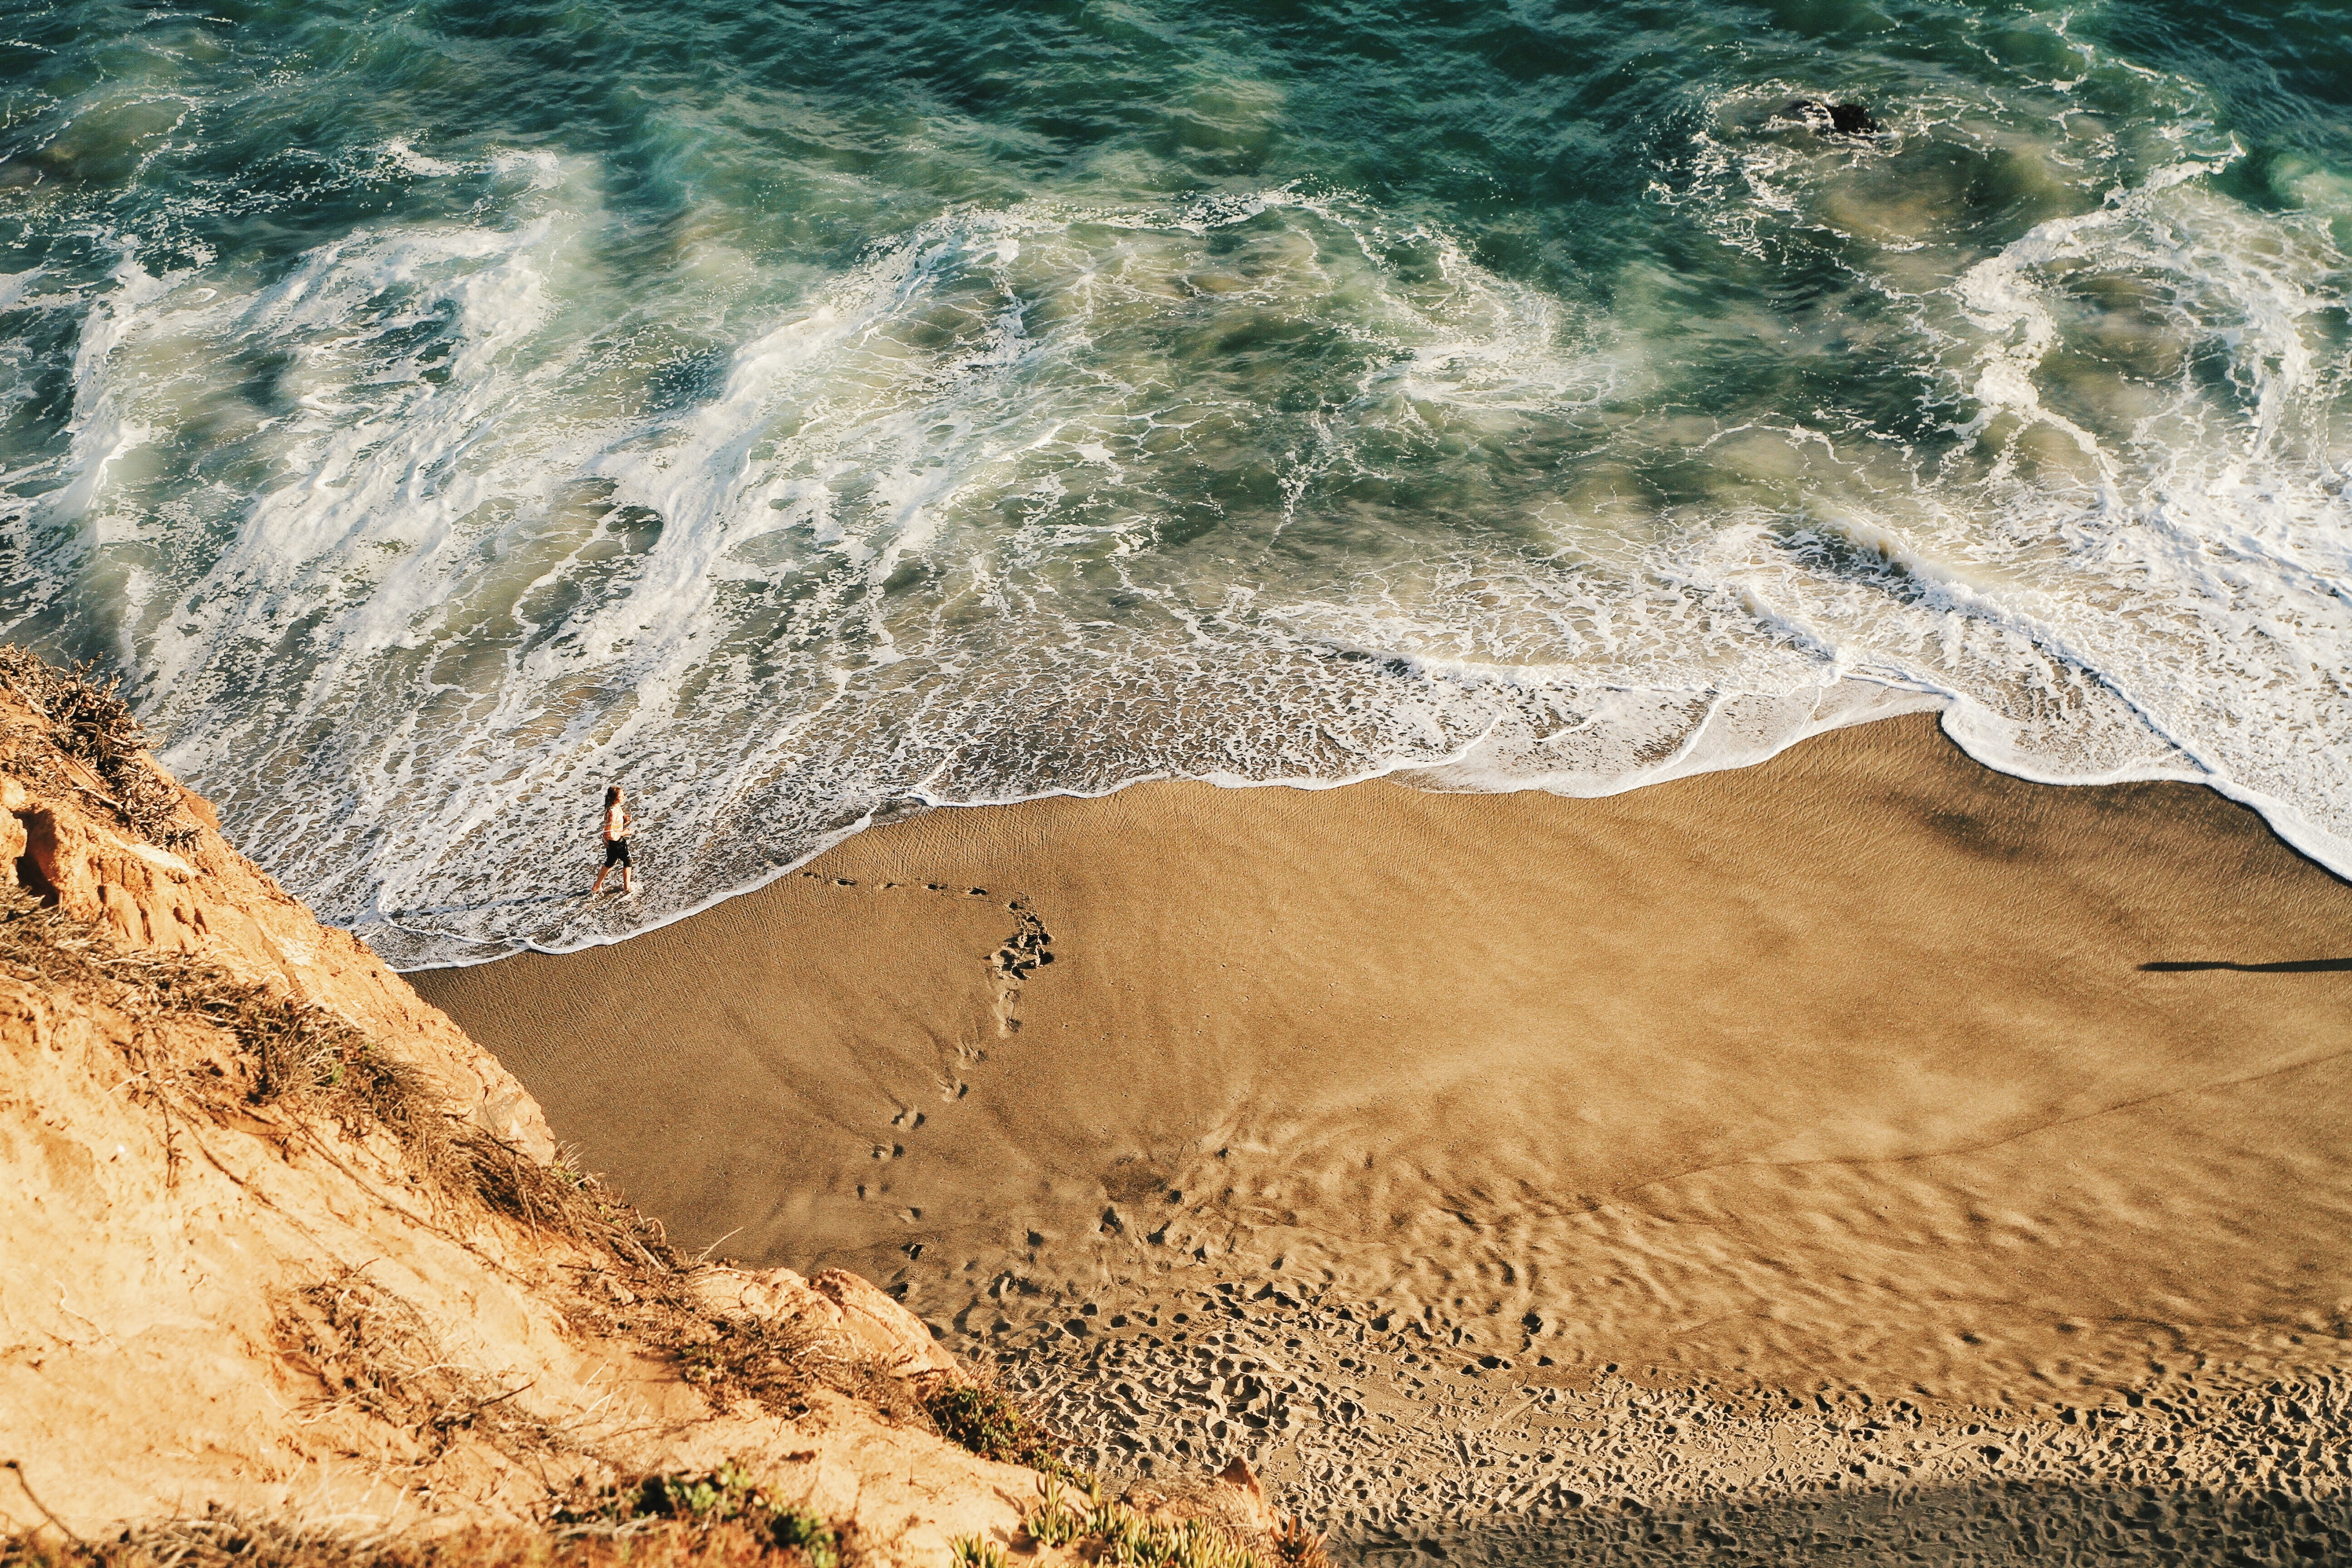 View from the cliff on a person walking down the sand beach by the foamy ocean waves